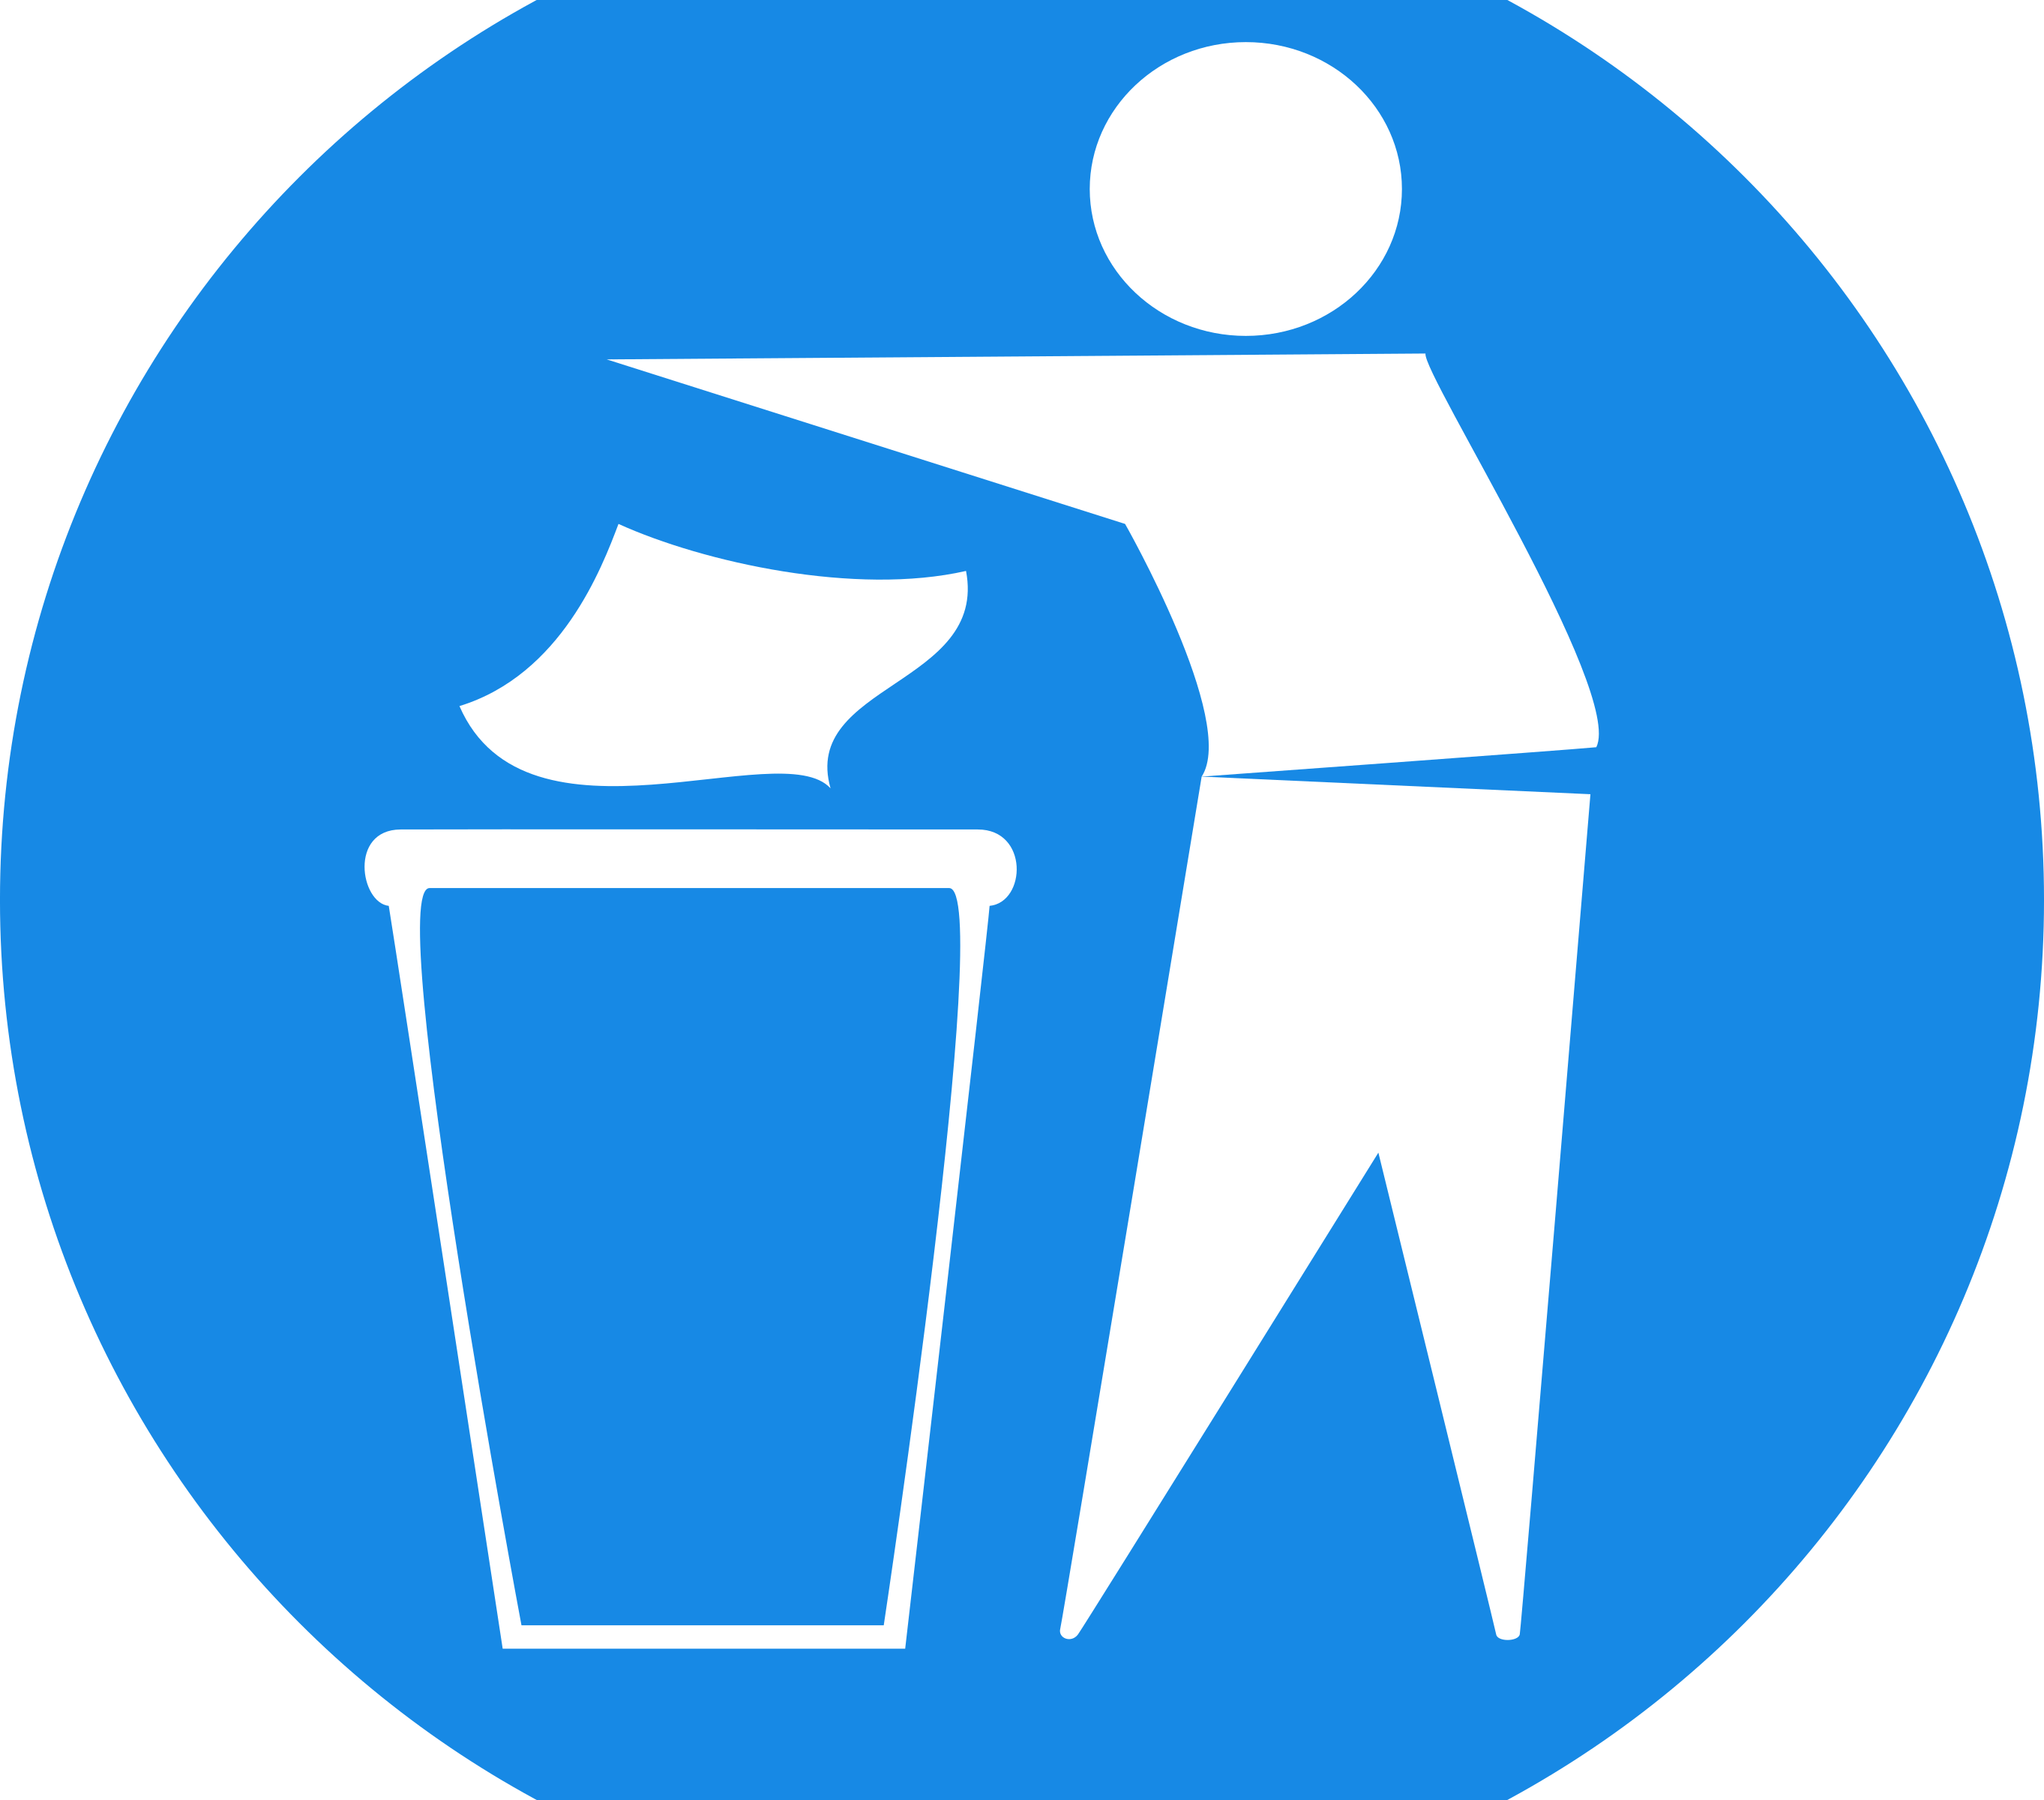 Put Rubbish in Bin Signs 2 by doctormo